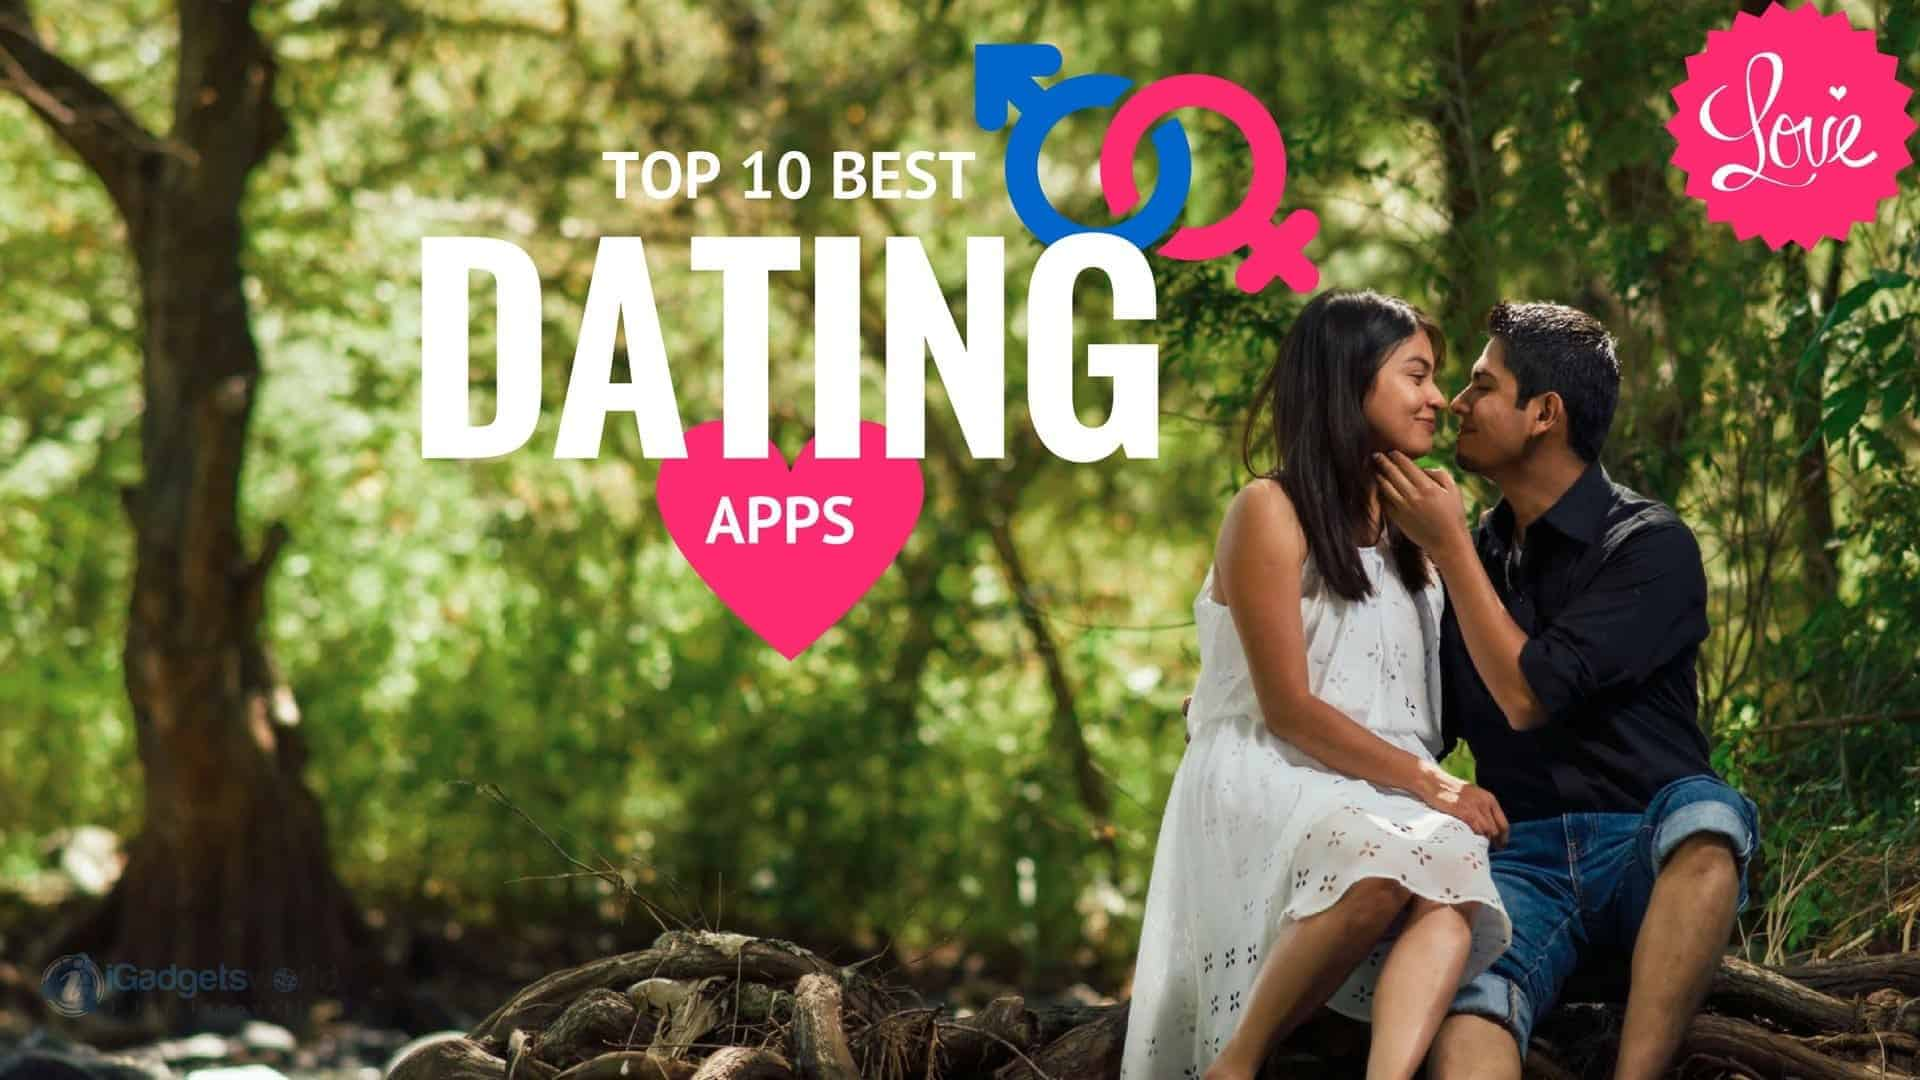 List of best dating apps in the world